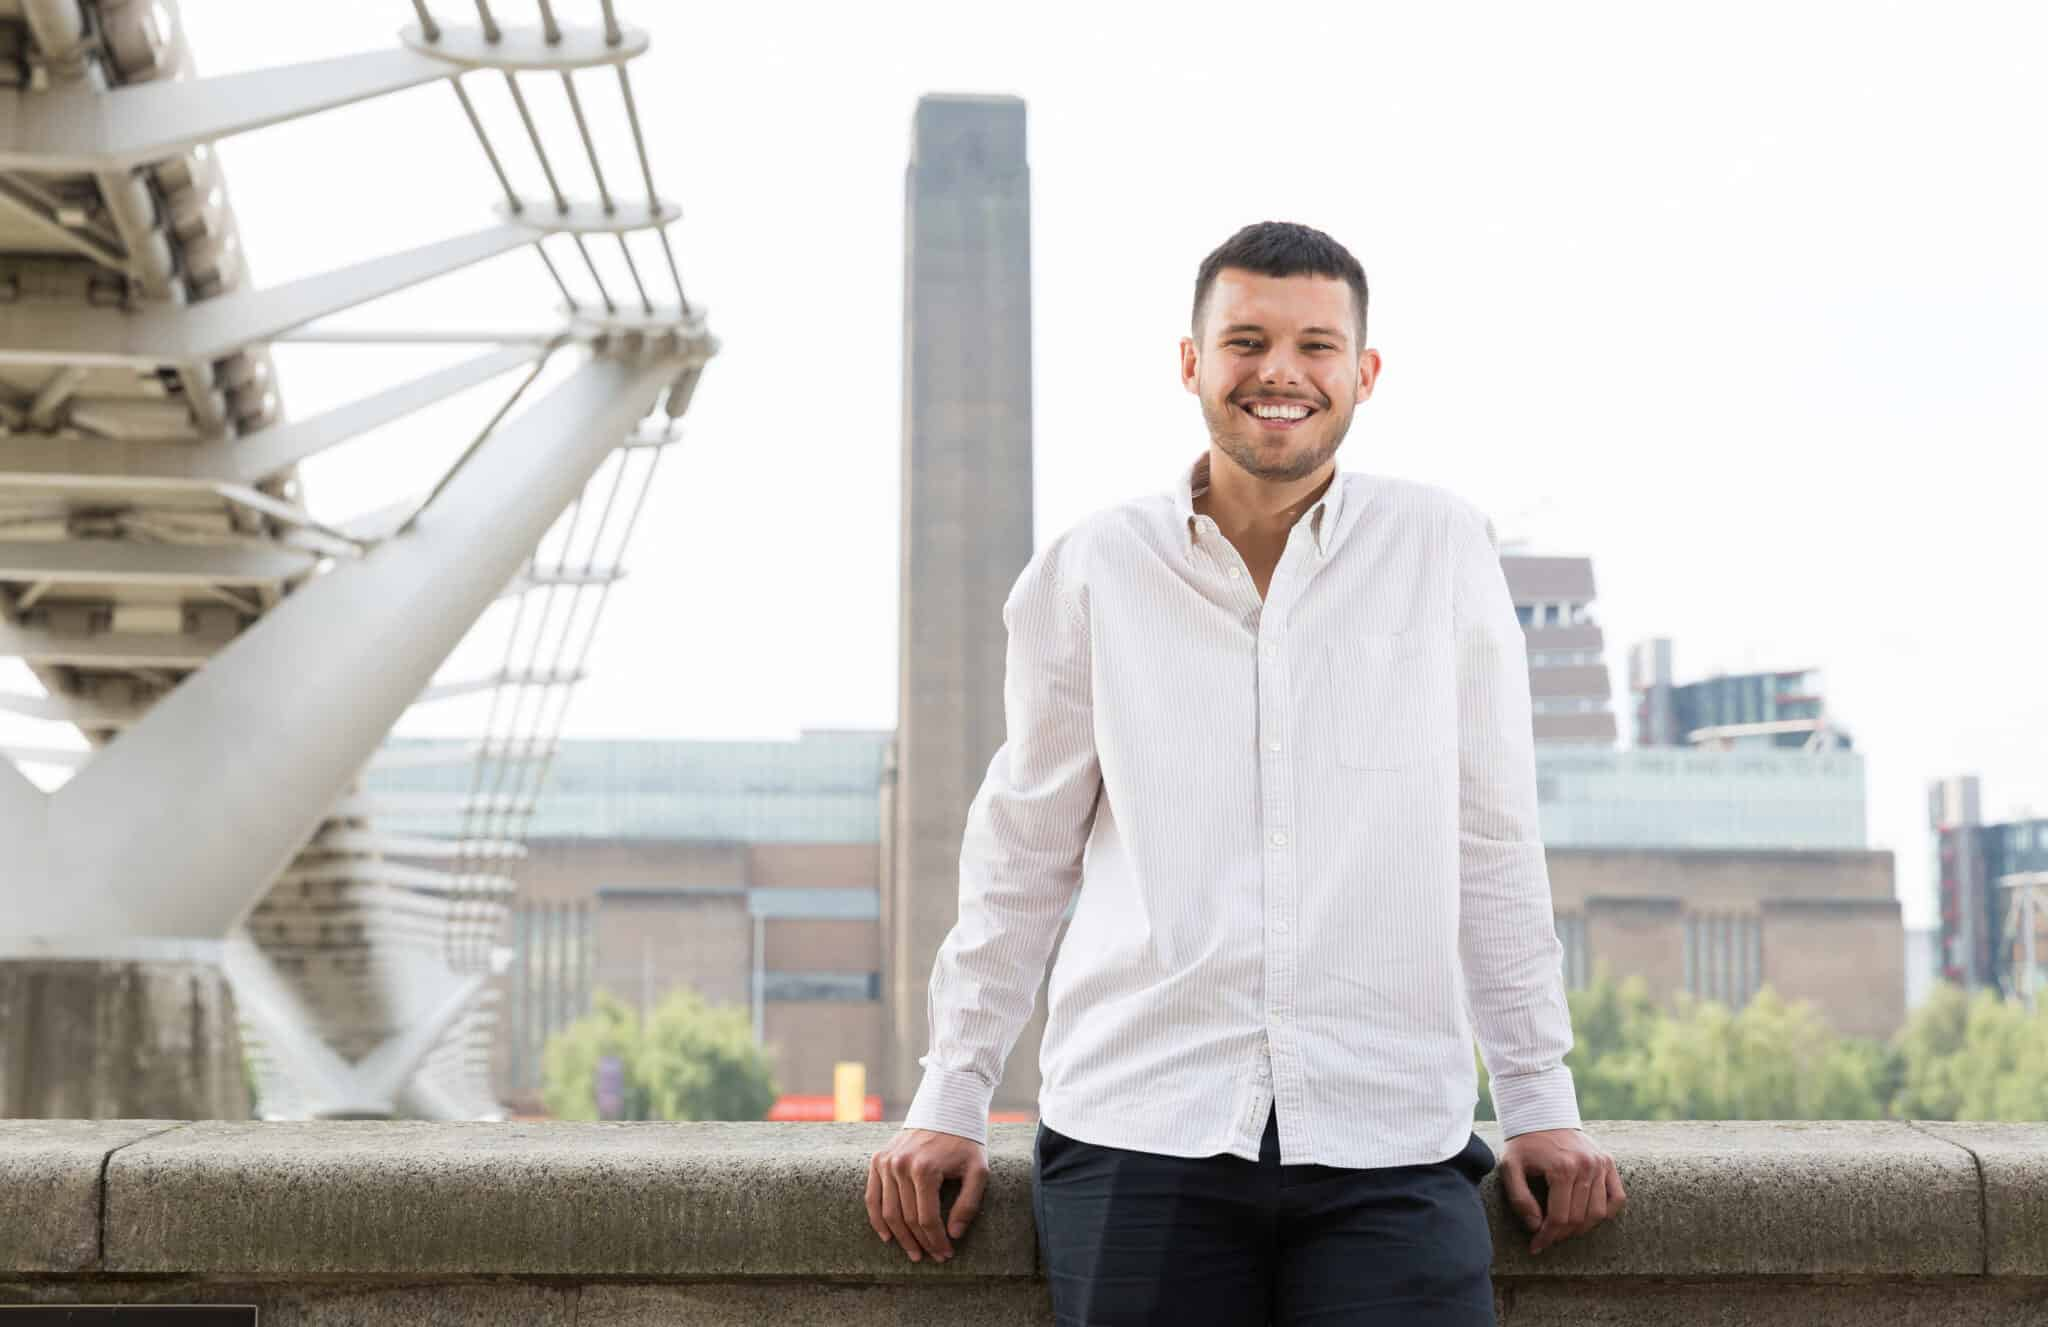 Luke is standing in front of the Tate Modern, he is leaning on a wall, smiling. he wears a white pin striped shirt and navy blue chinos.